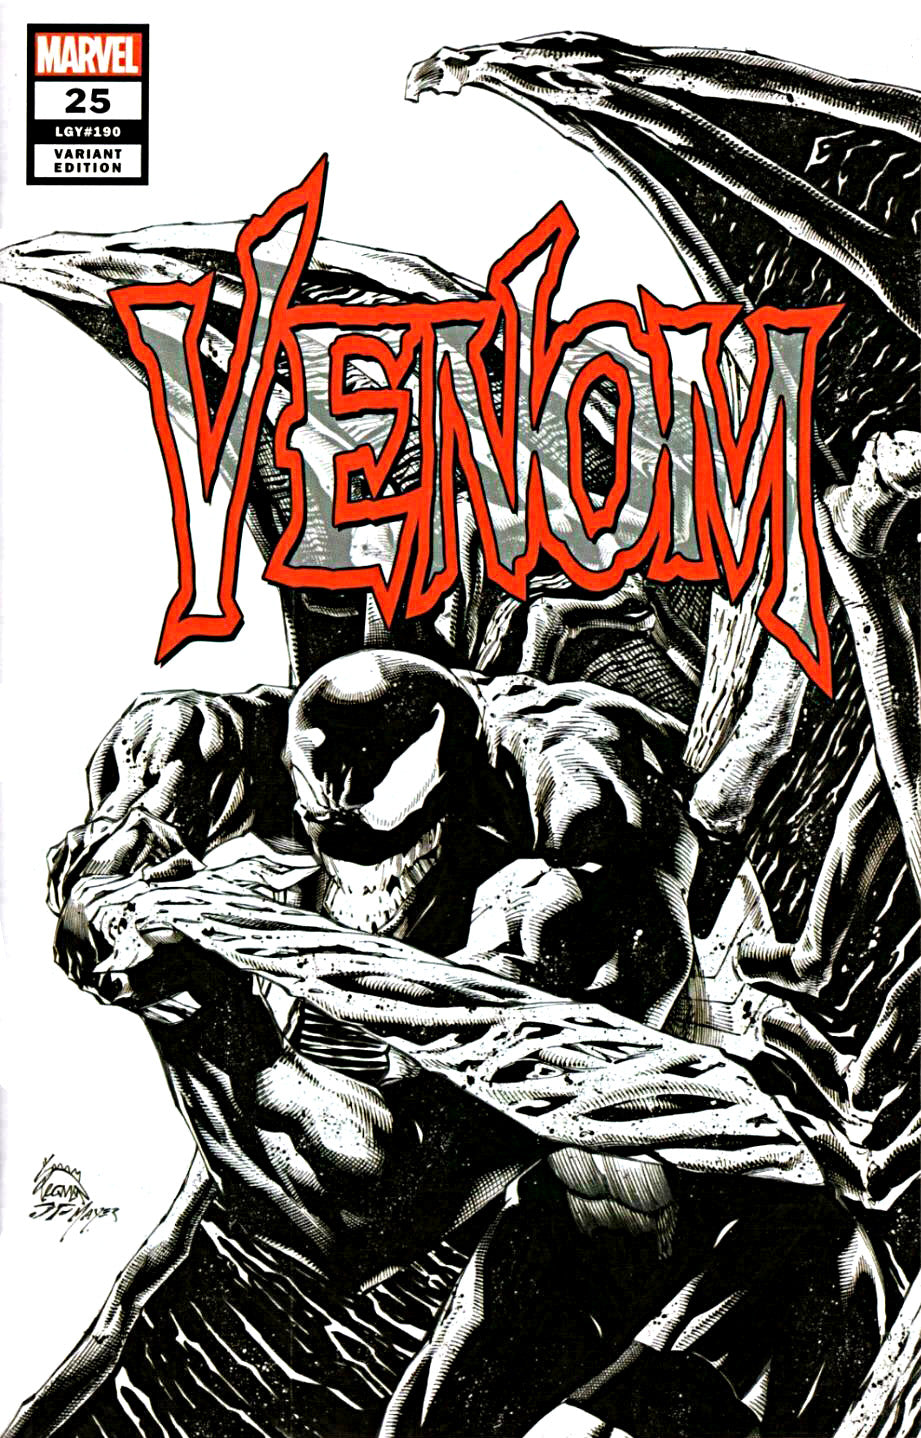 Venom #25 Retailer Summit PX Variant - First Virus (2020)